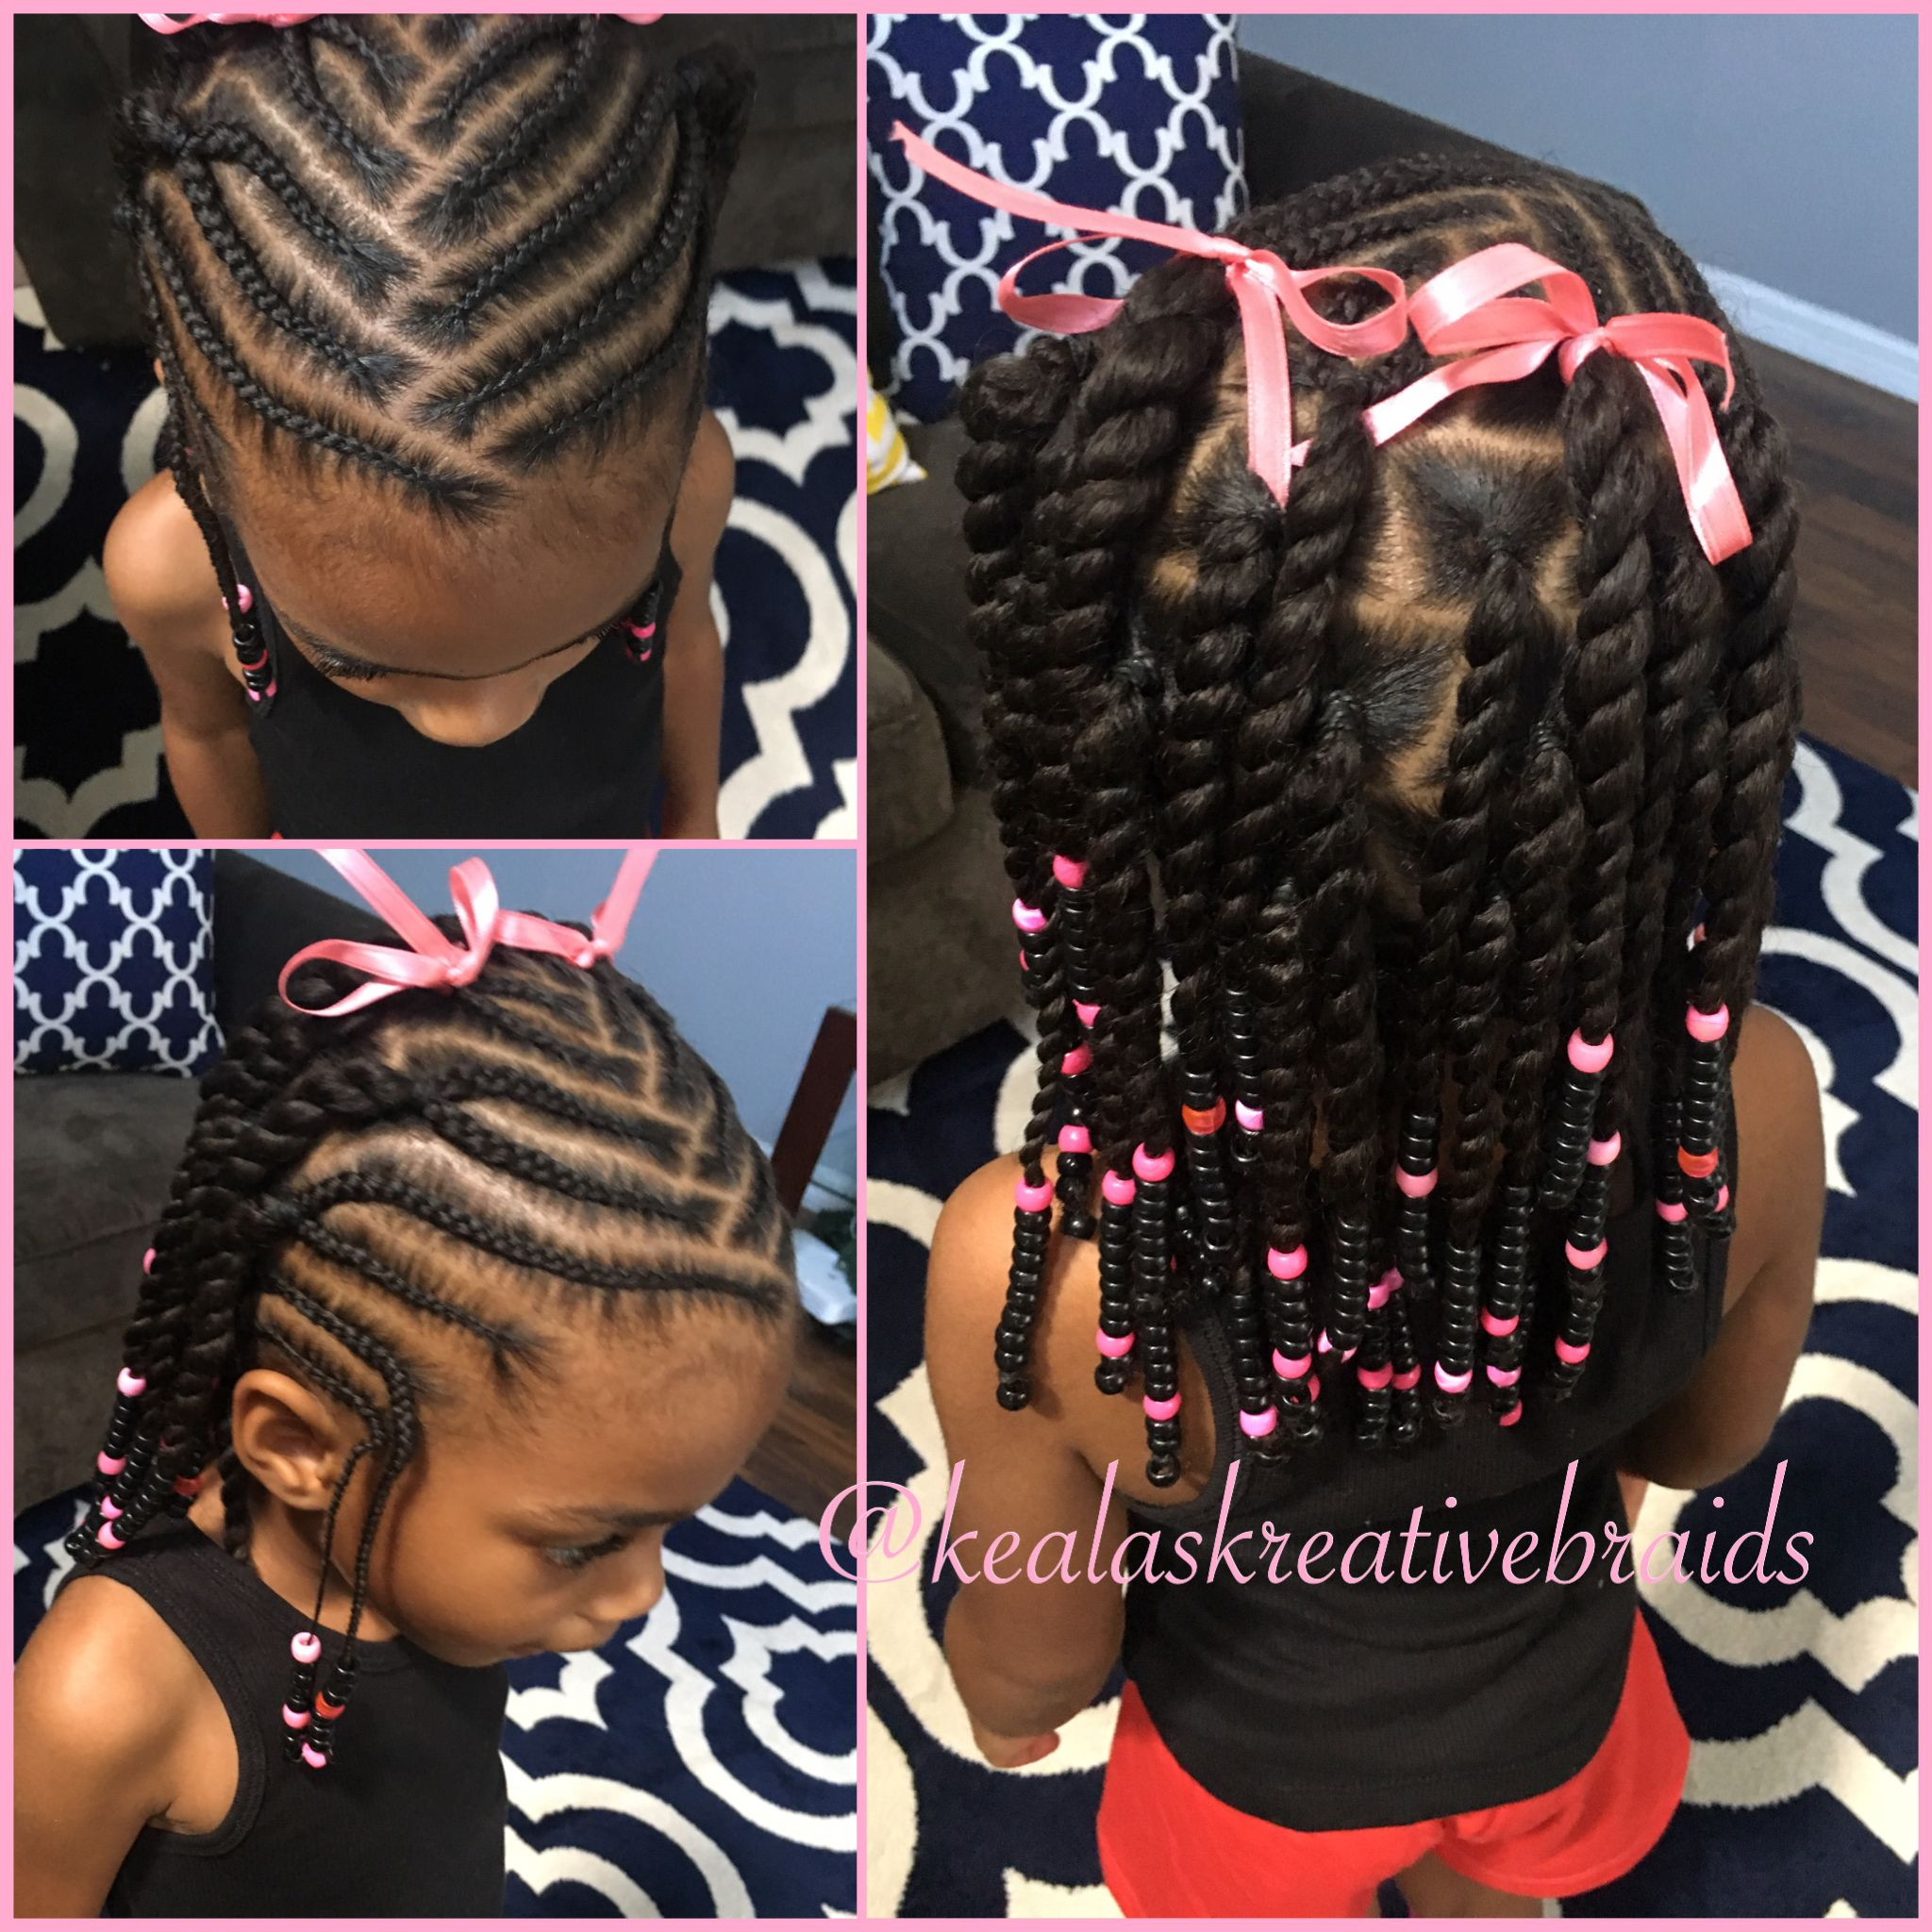 Best ideas about Hairstyle Braids For Little Girls . Save or Pin Little Girl Hairstyle Beads and Braids Now.